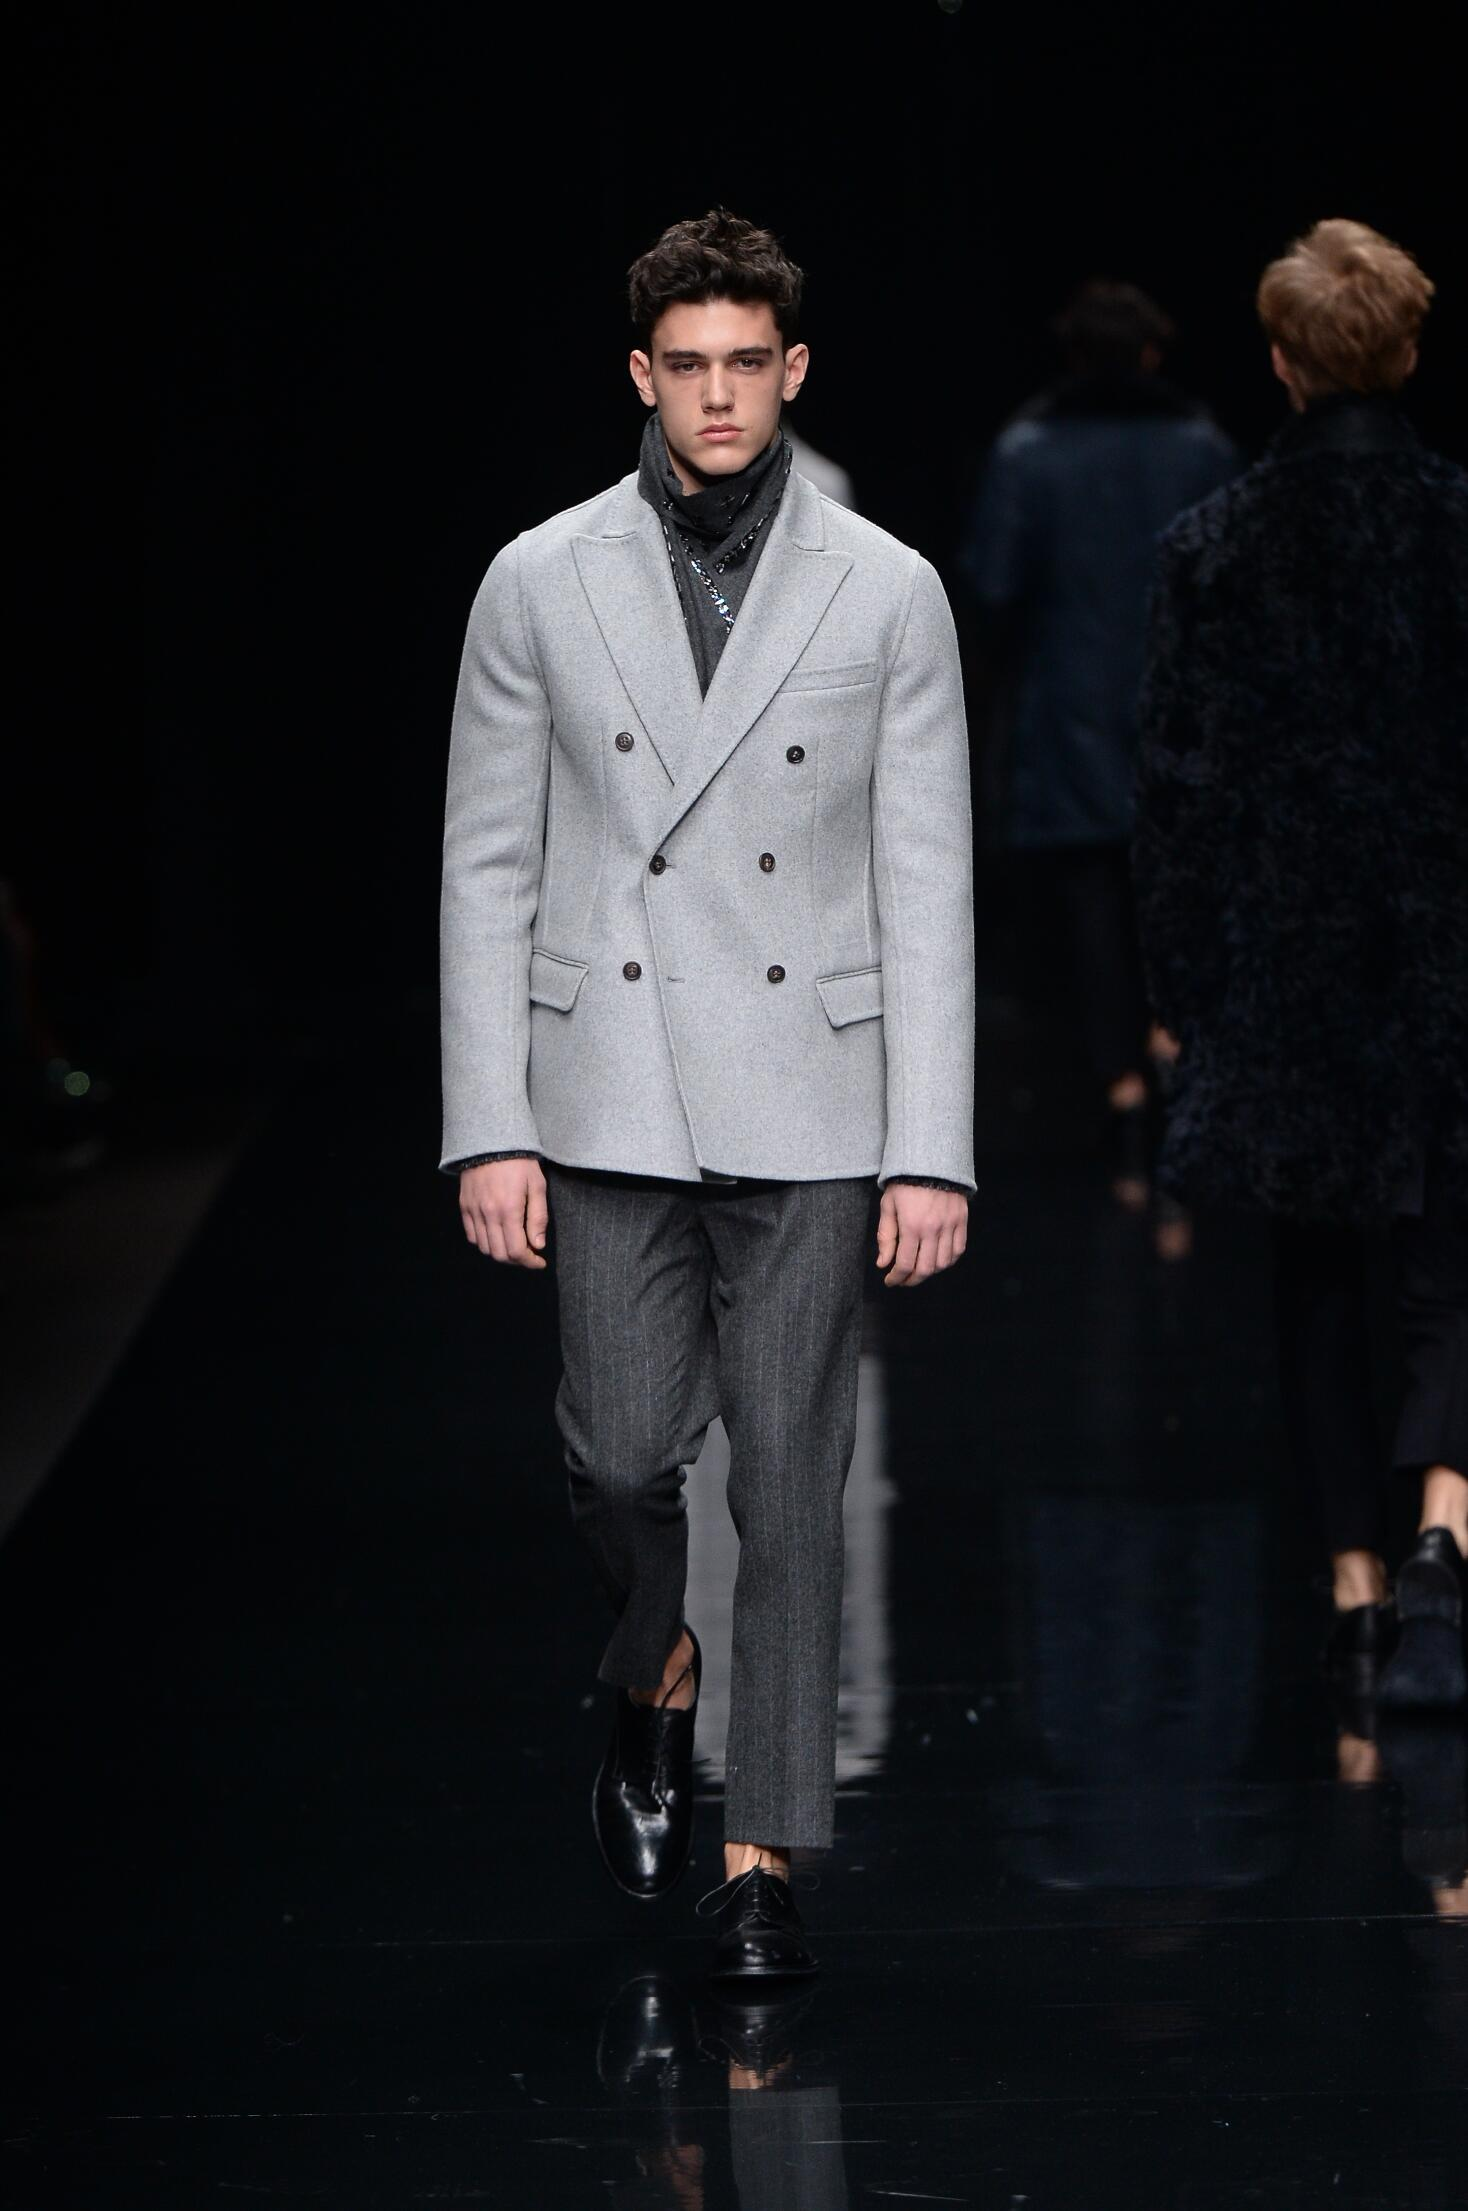 Ermanno Scervino Collection Fashion Show FW 2015 2016